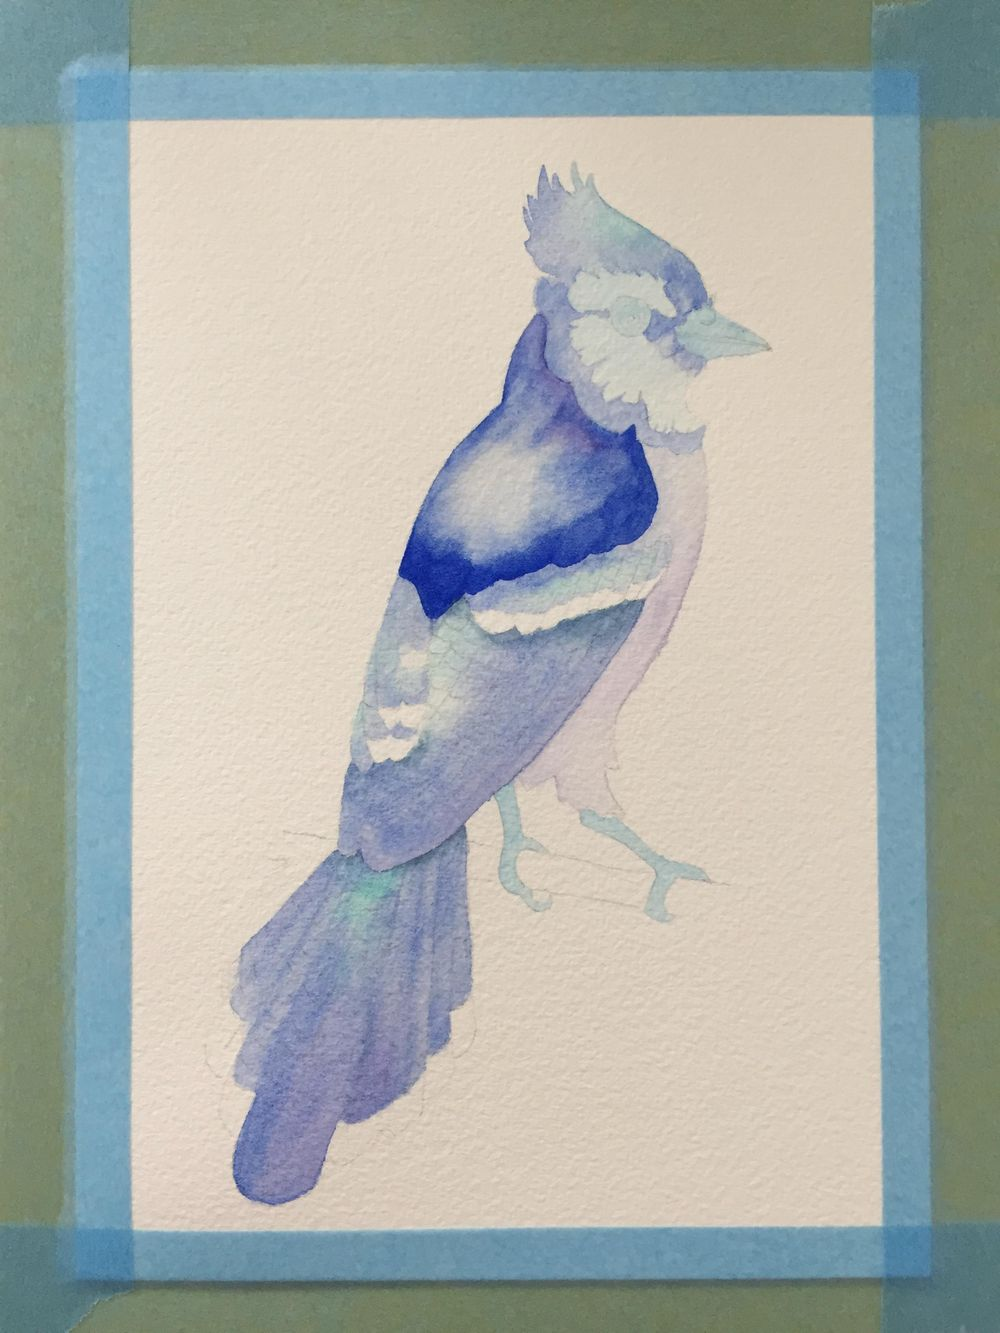 Watercolour Blue Jay - image 2 - student project